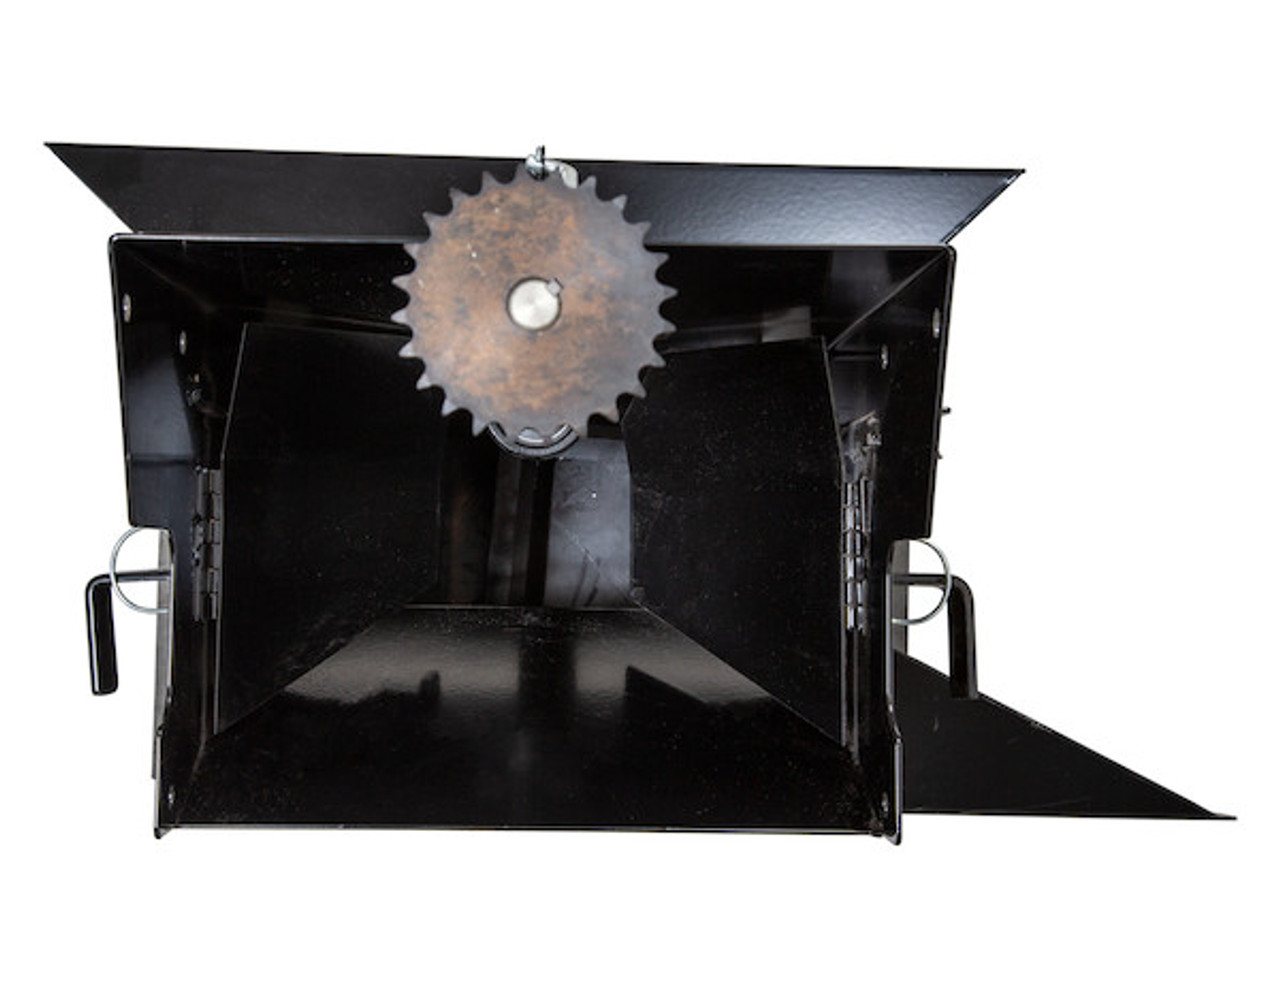 BUYERS 142005A Replacement Standard Carbon Chute For SaltDogg 1400400 And 1400450 Spreaders 6